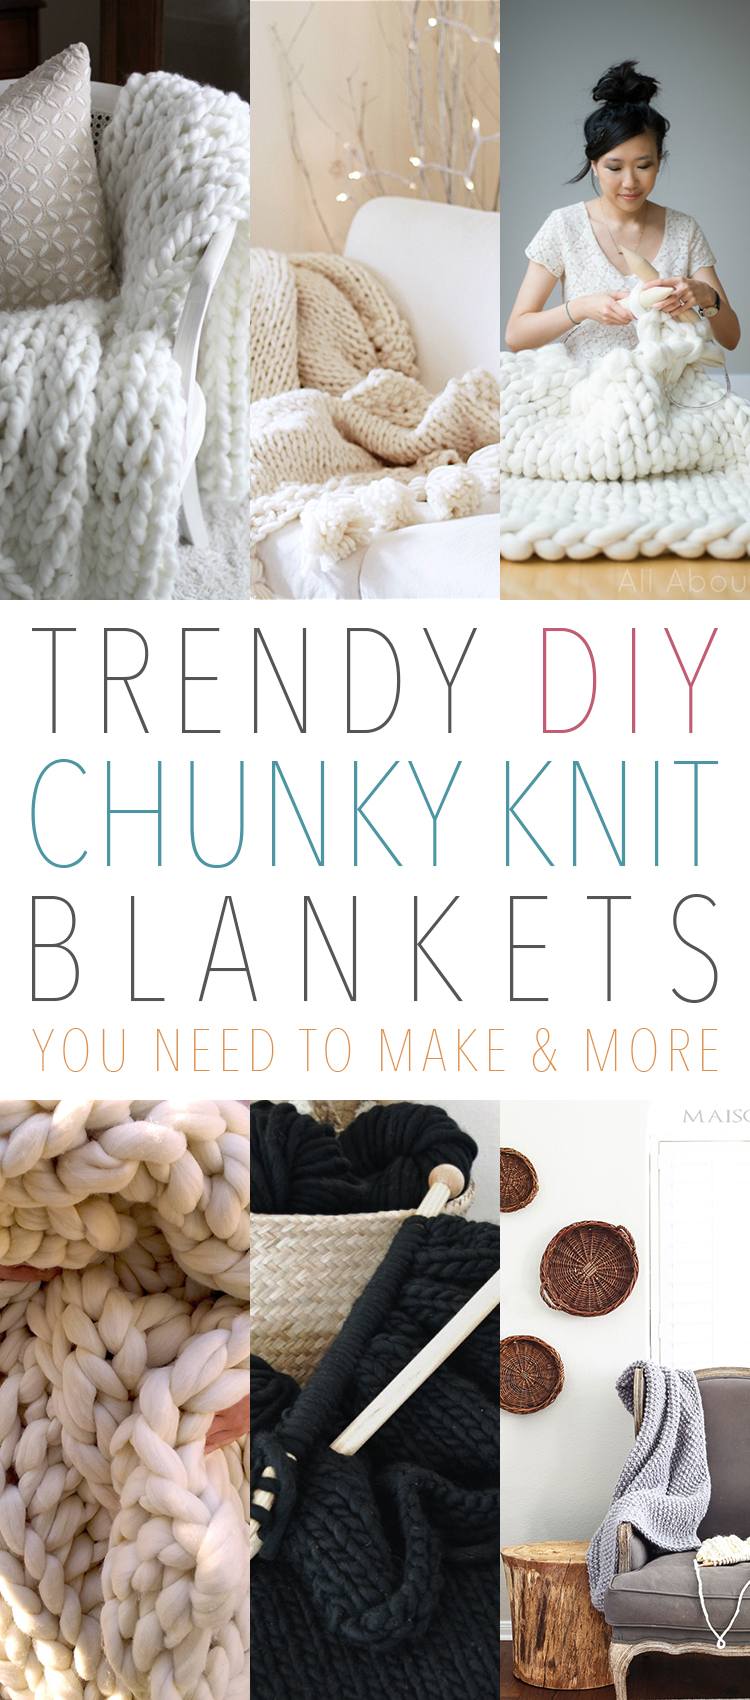 Trendy DIY Chunky Knit Blankets Perfect for Cold Weather and Cozy Days